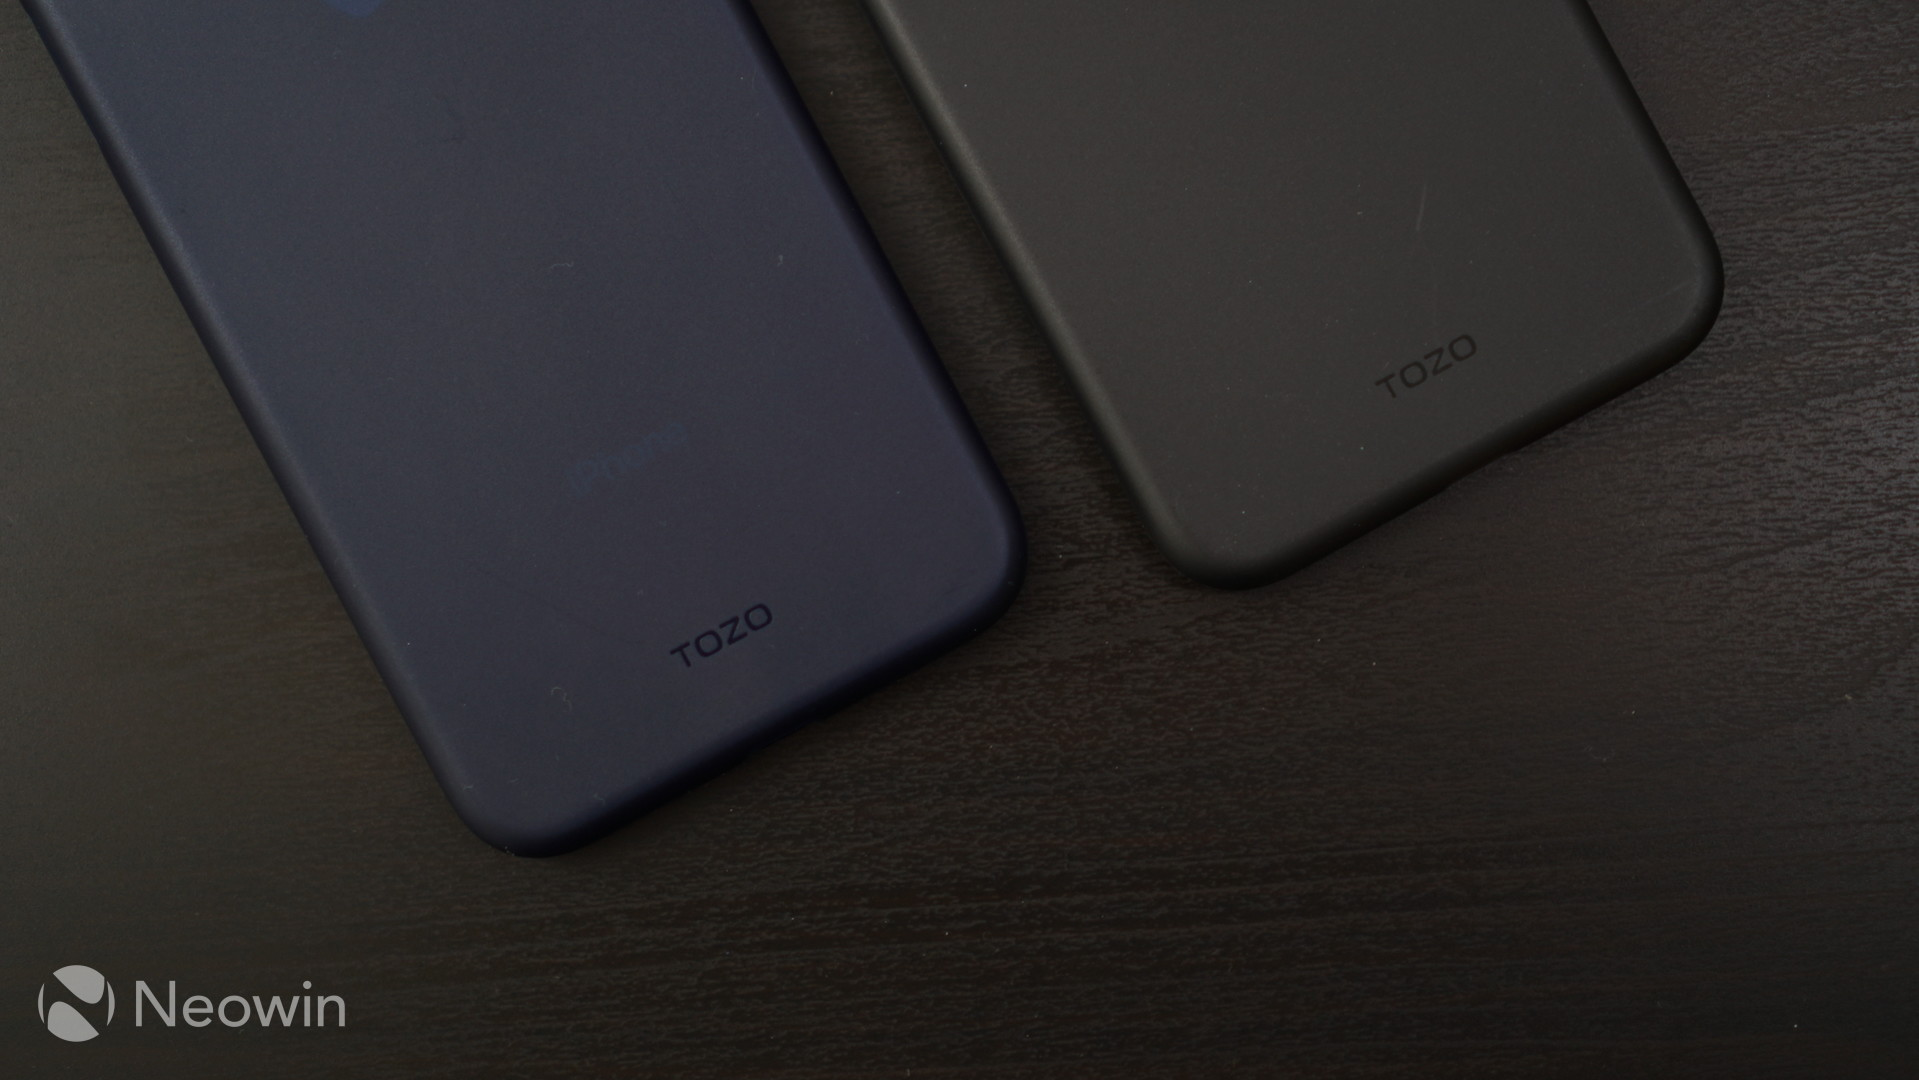 quality design 0466c bdcd0 Tozo is an attractive ultra thin case option for the iPhone X - Neowin